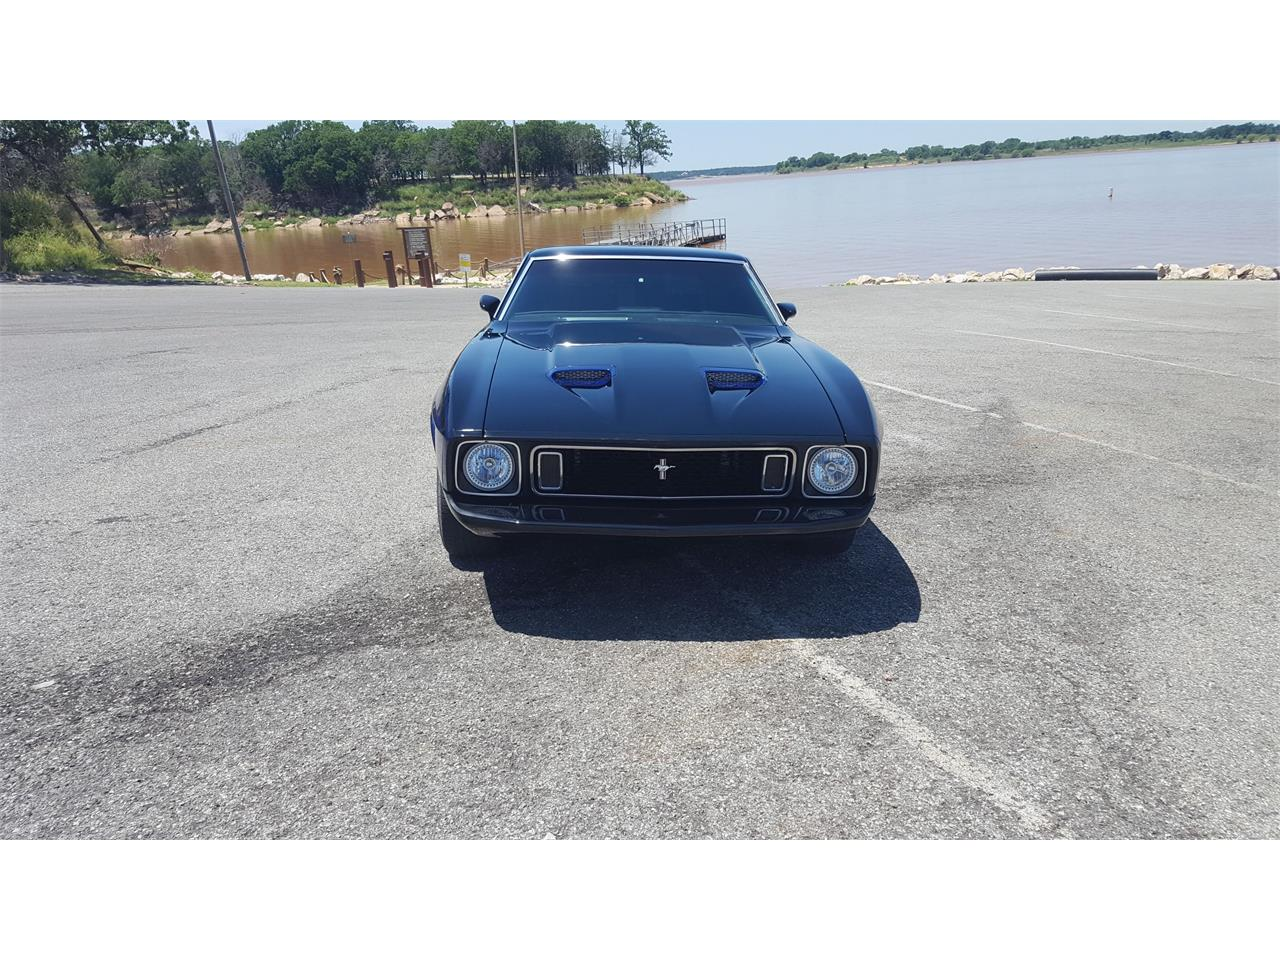 Large Picture of 1973 Ford Mustang Mach 1 - $45,000.00 Offered by a Private Seller - LBYV